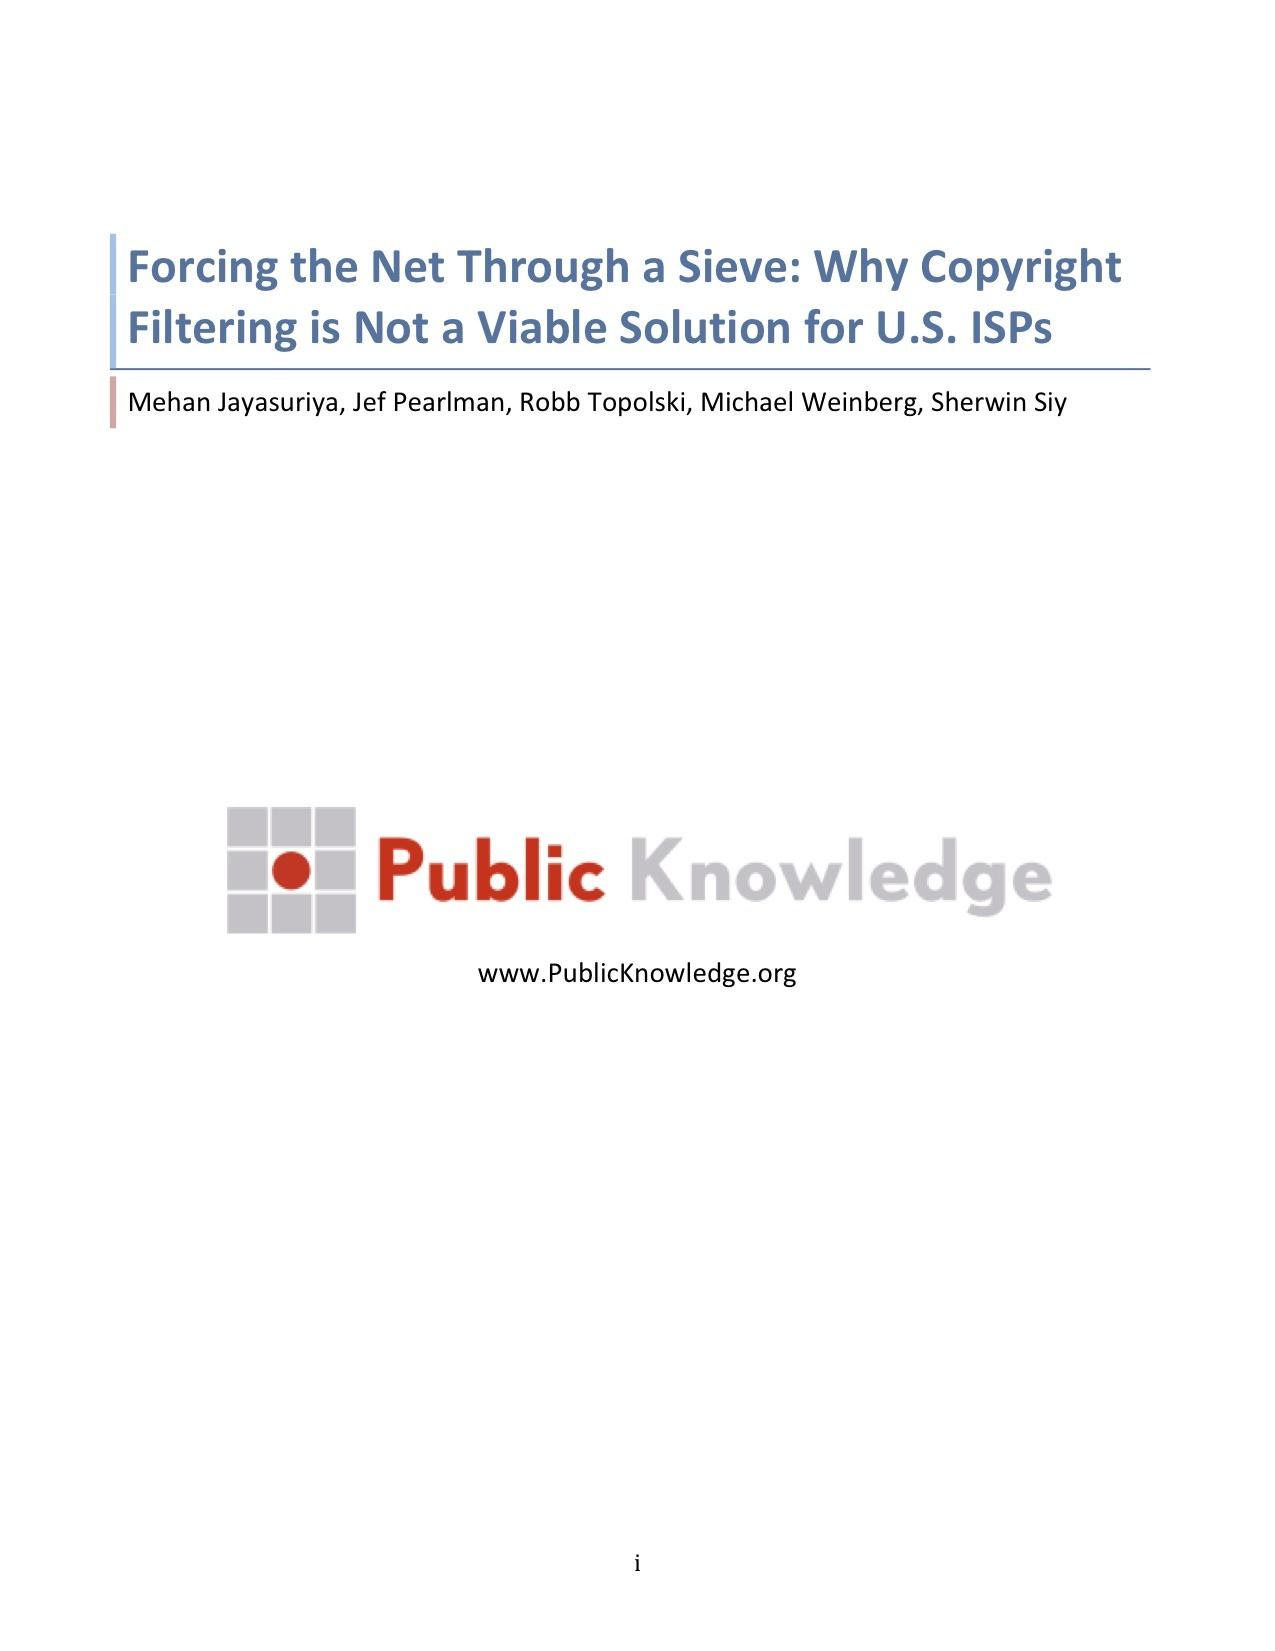 This whitepaper examines proposals to impose copyright filtering on ISPs and explains why it is not a viable solution to the problem of online copyright infringement. A PDF of this paper can be found here.